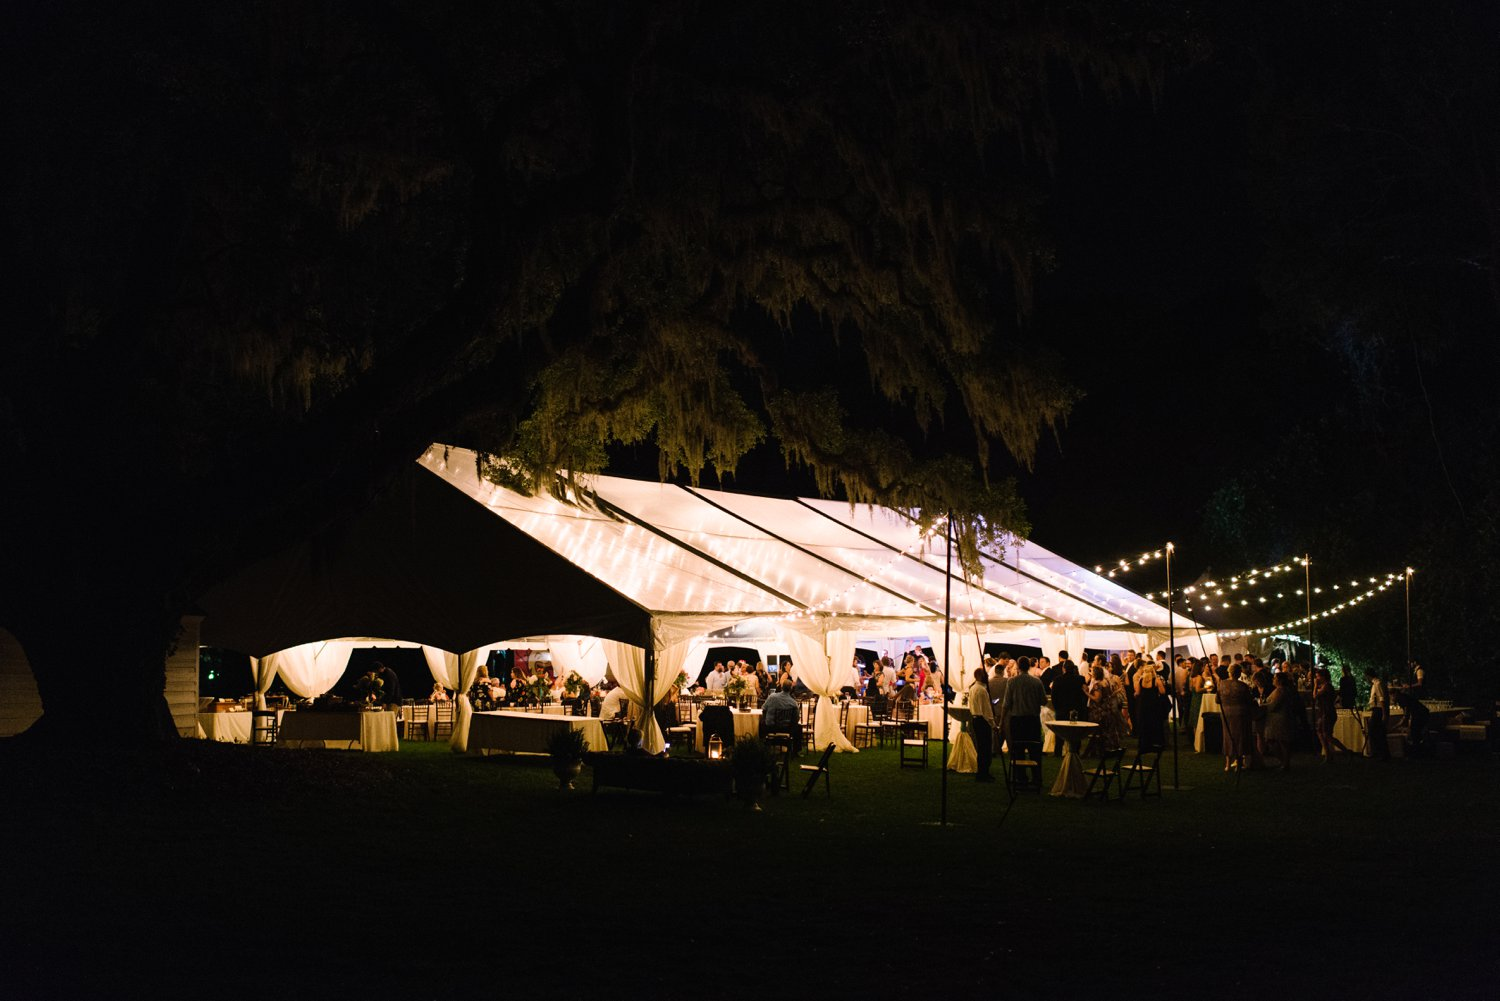 Lindsey_A_Miller_Photography_mcleod_plantation_wedding_charleston_south_carolina_clear_tent_spring_mod_events_089.jpg